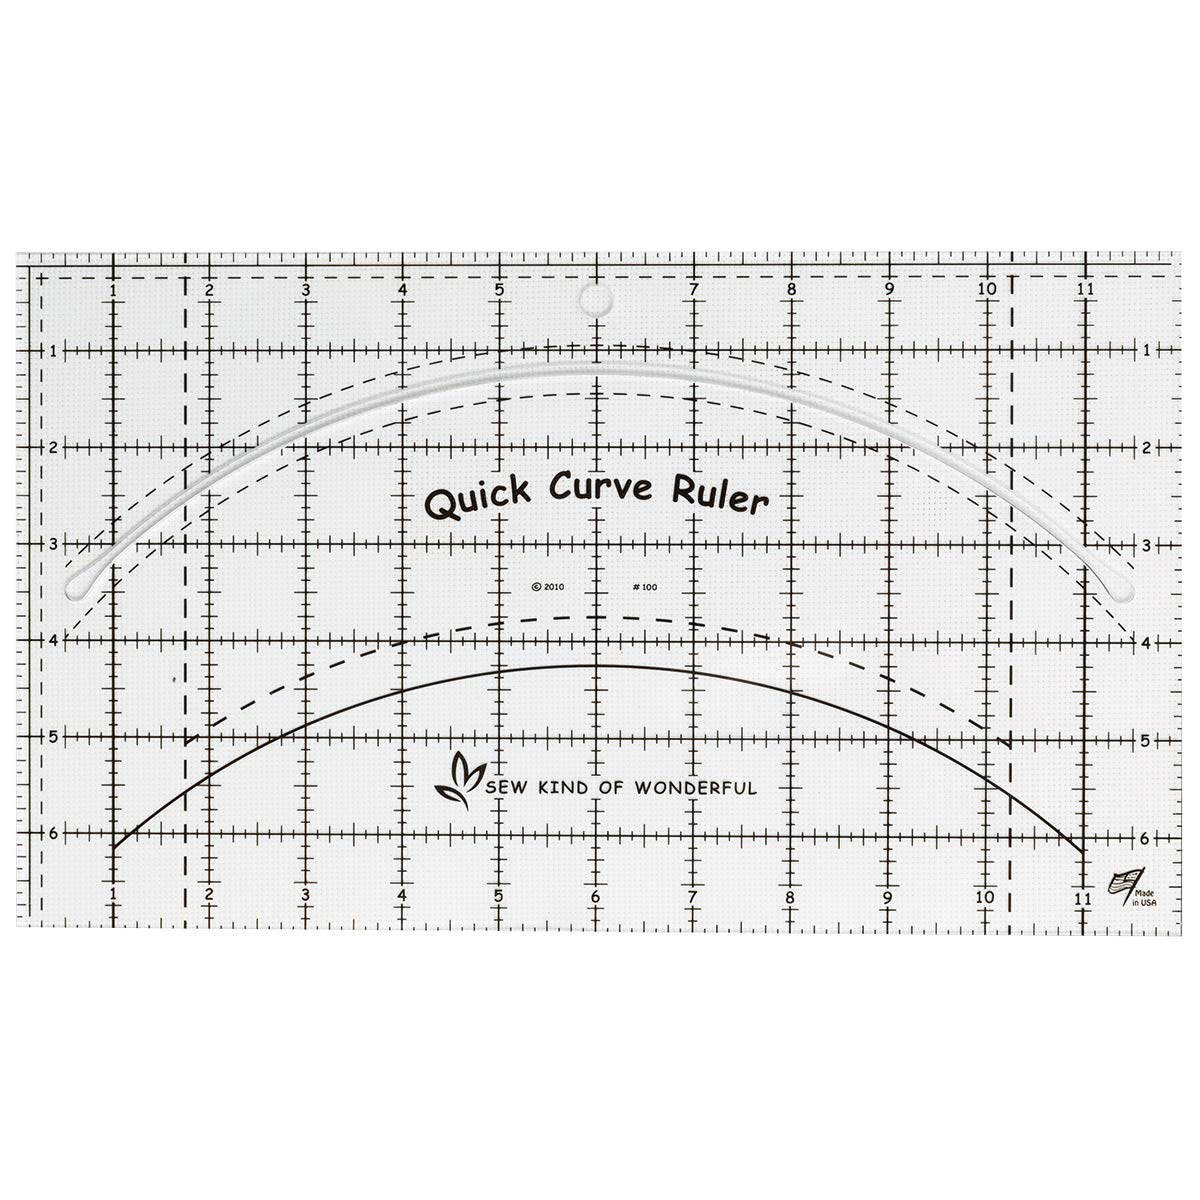 Quick Curve Ruler from Sew Kind of Wonderful by Checker Notions Company Inc